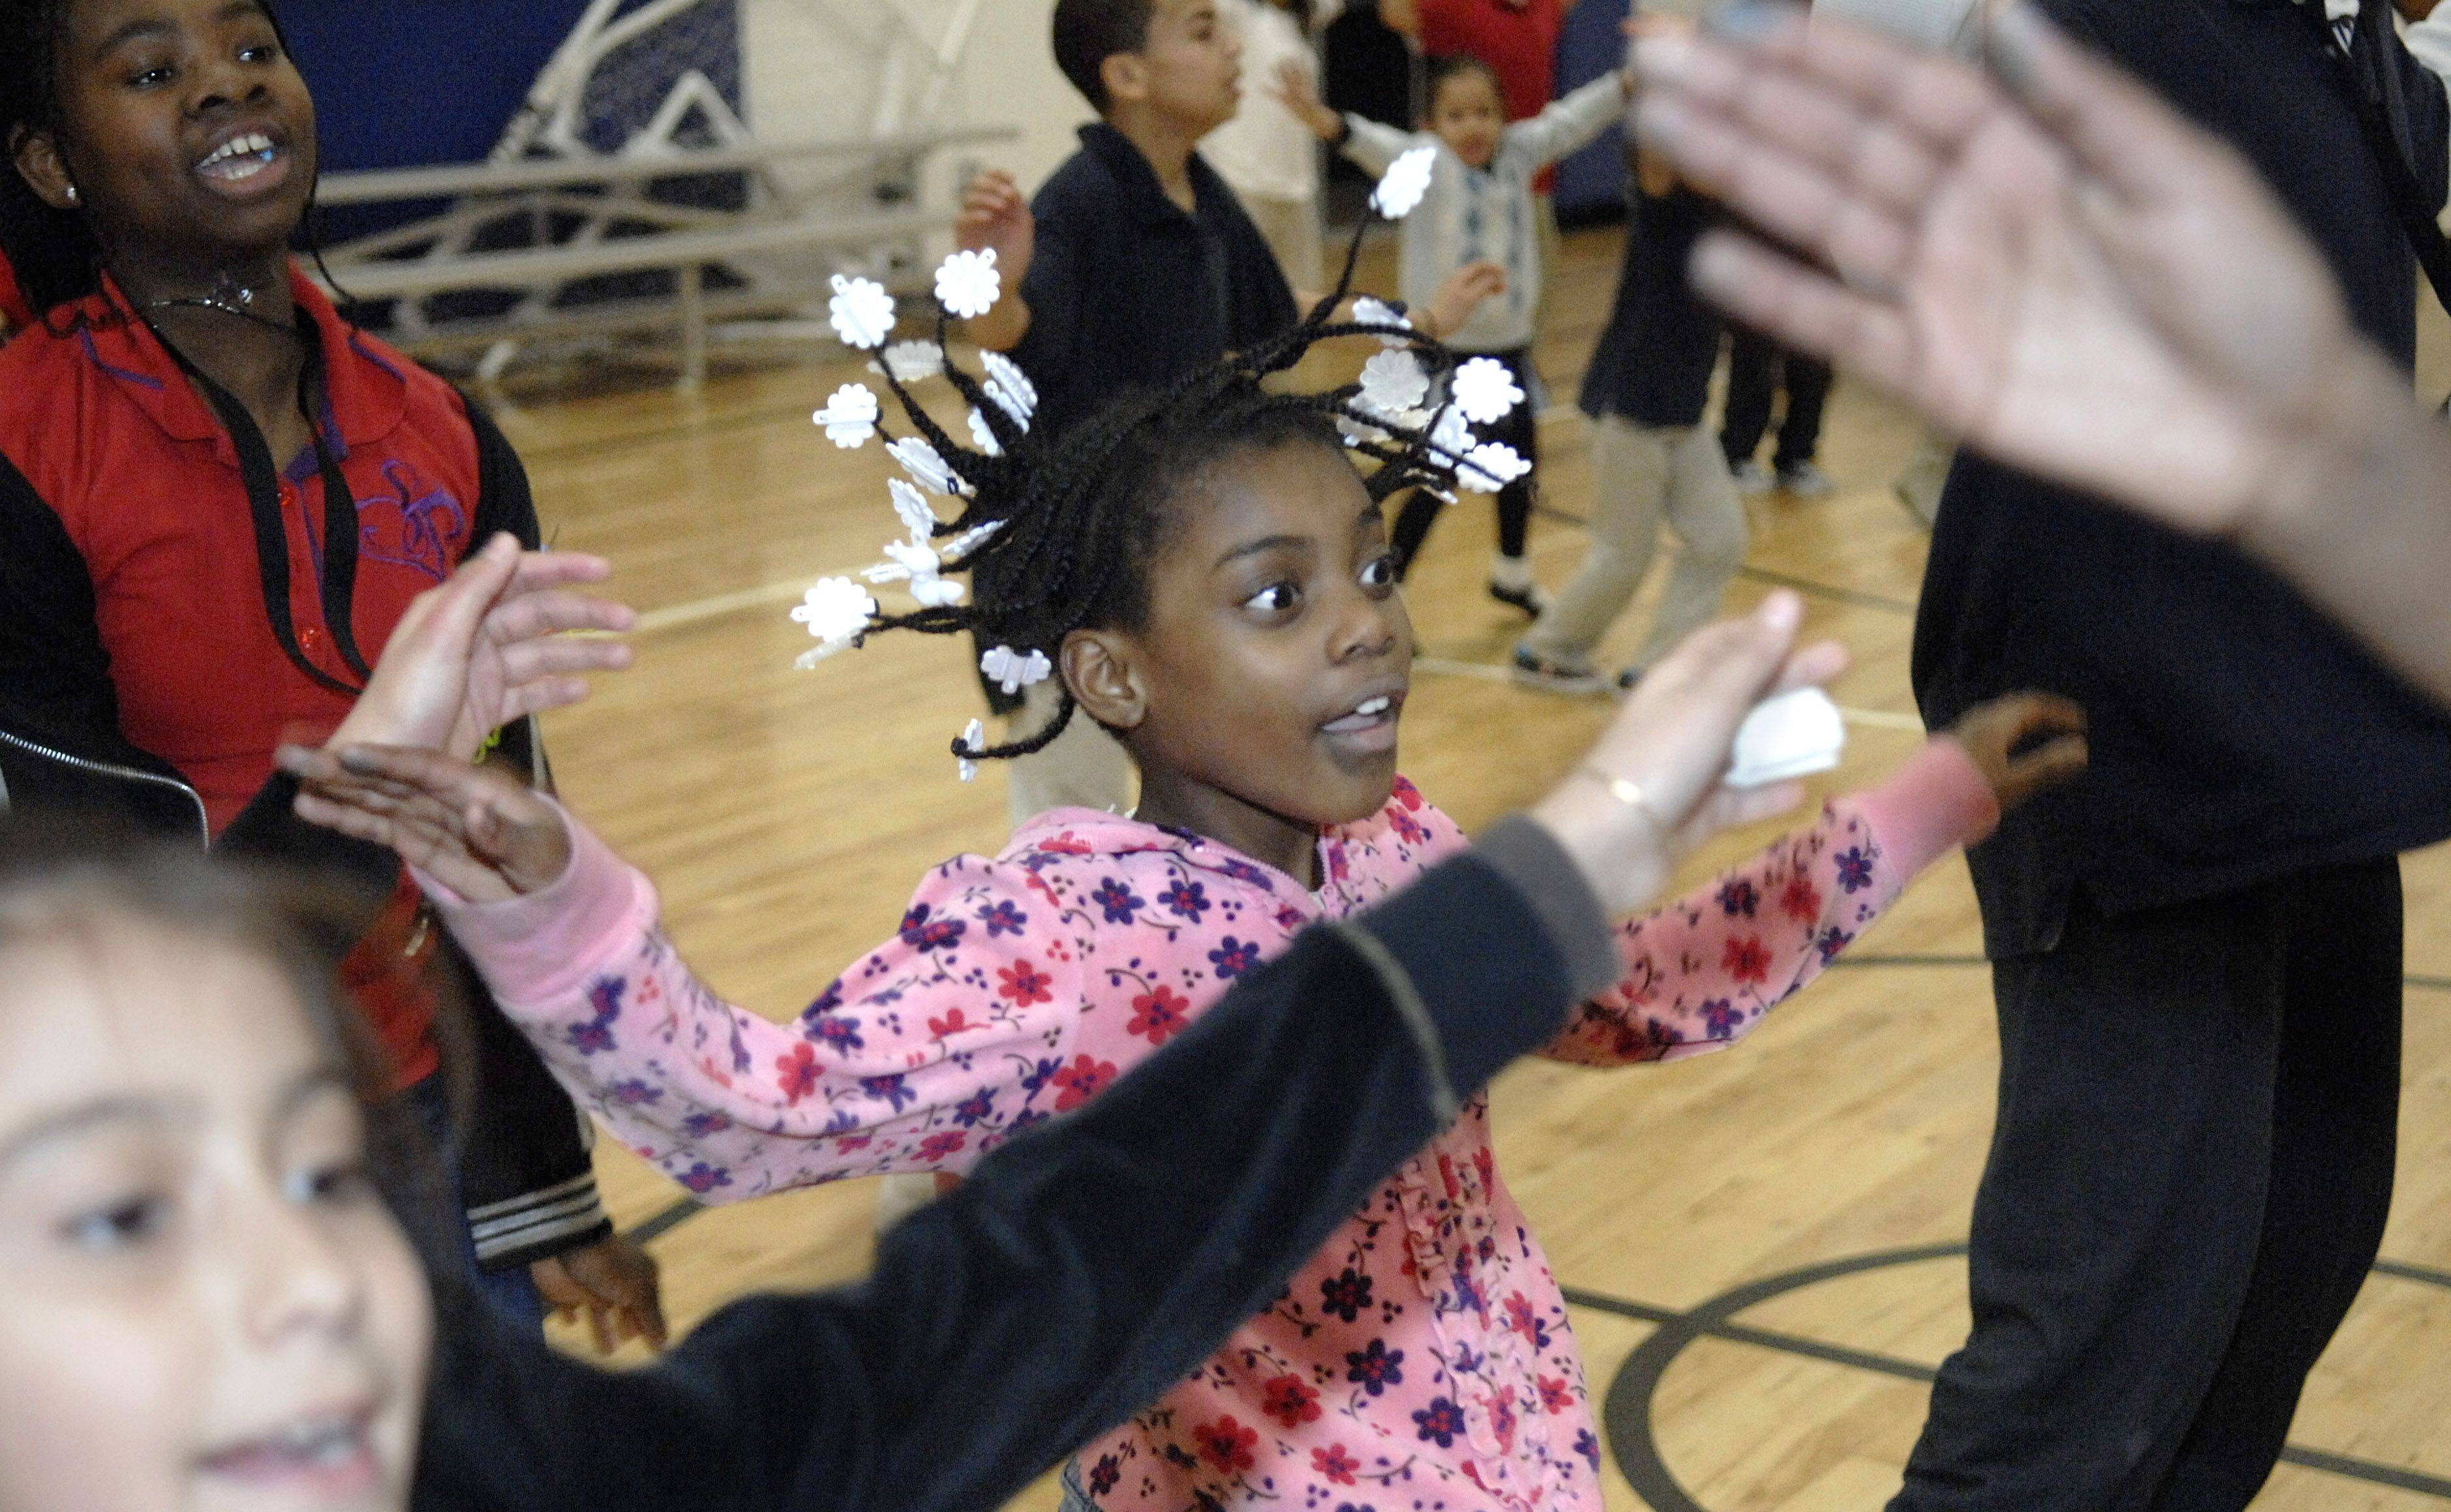 Adrianna Jackson's hair flies while she participates in a Guinness Book of World Records attempt to break the current record for most people doing jumping jacks at the same time at the Boys and Girls Club of Elgin. Adrianna, 8, of Elgin and dozens of kids participated in the 2-minute challenge, and jumped at 5:30 along with other clubs across the country on Tuesday.